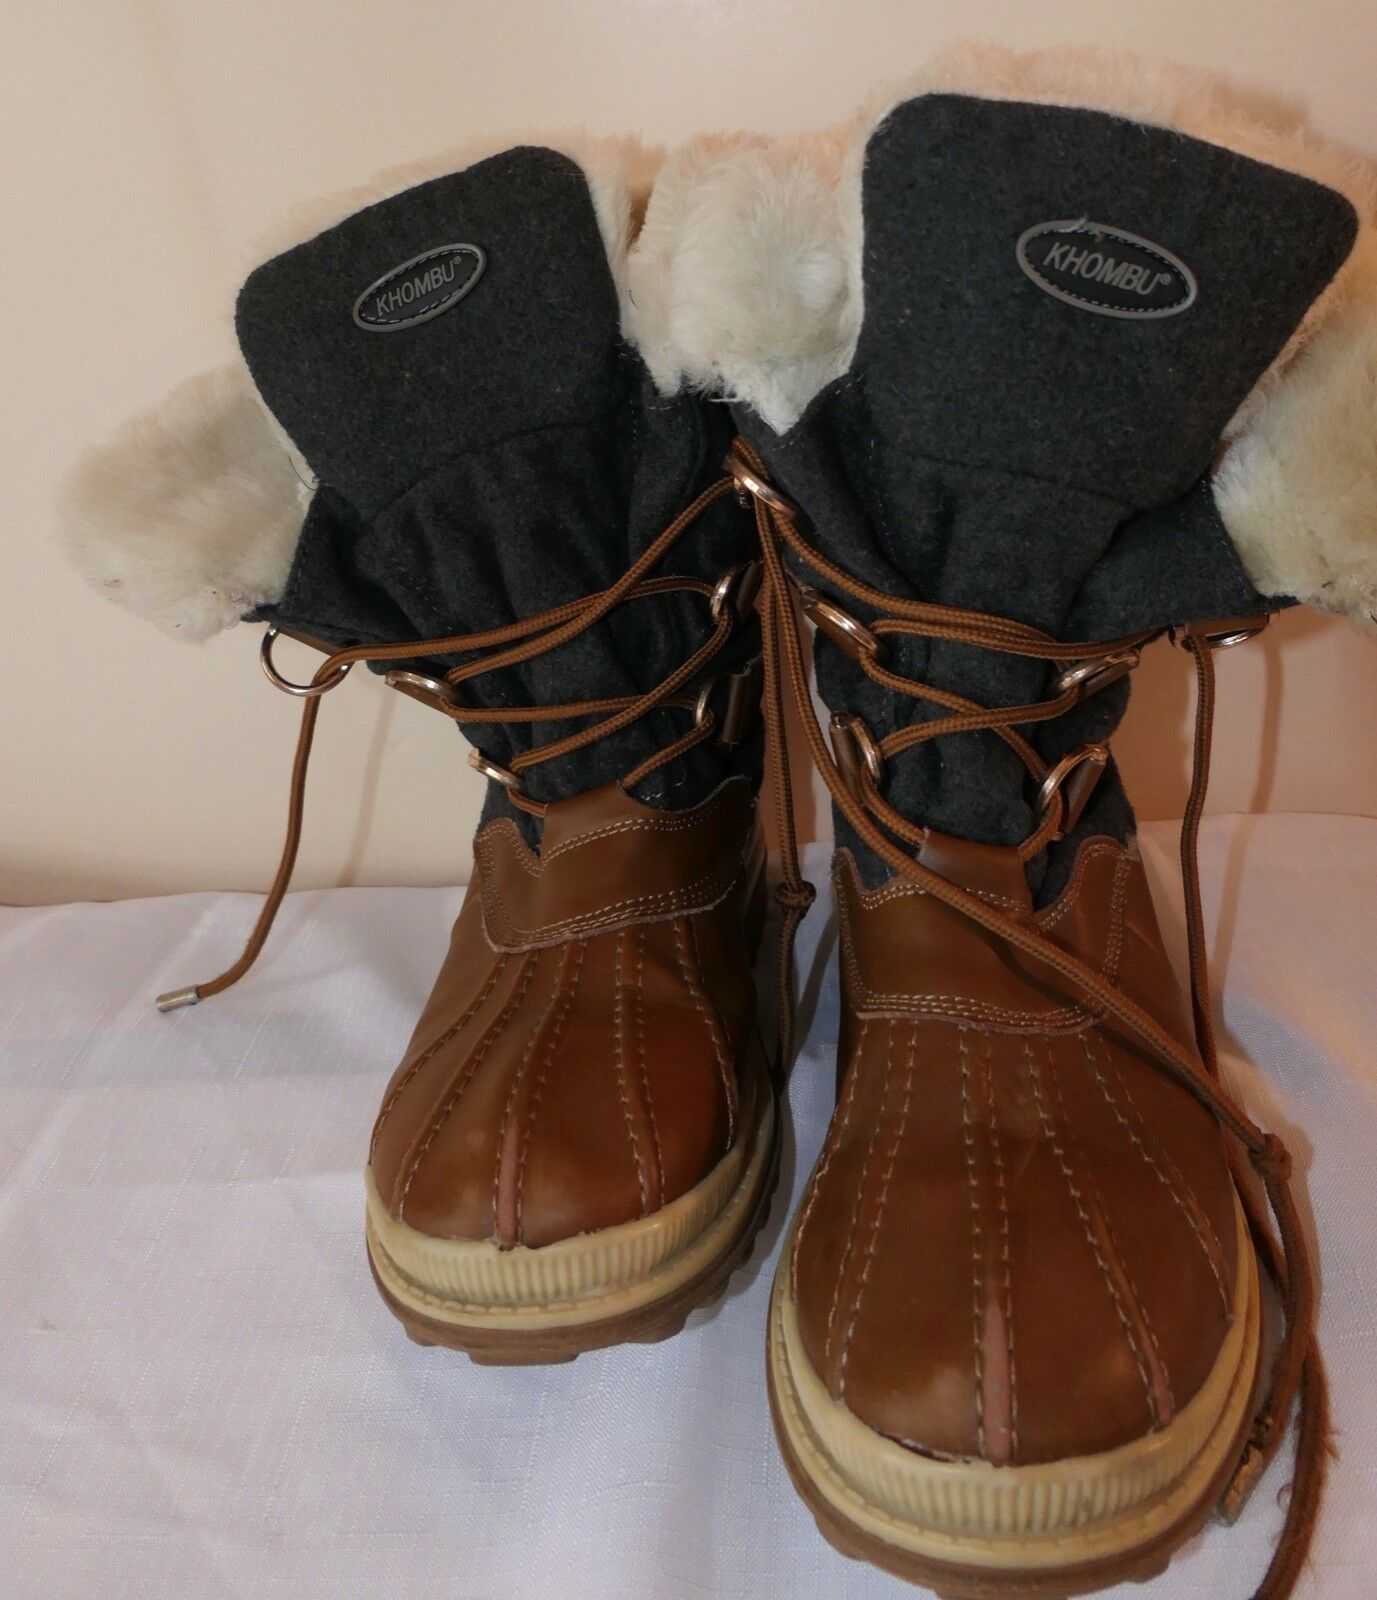 KOHMBU PARK CITY WINTER BOOTS FUR LINED WOMANS US SIZE 9 M